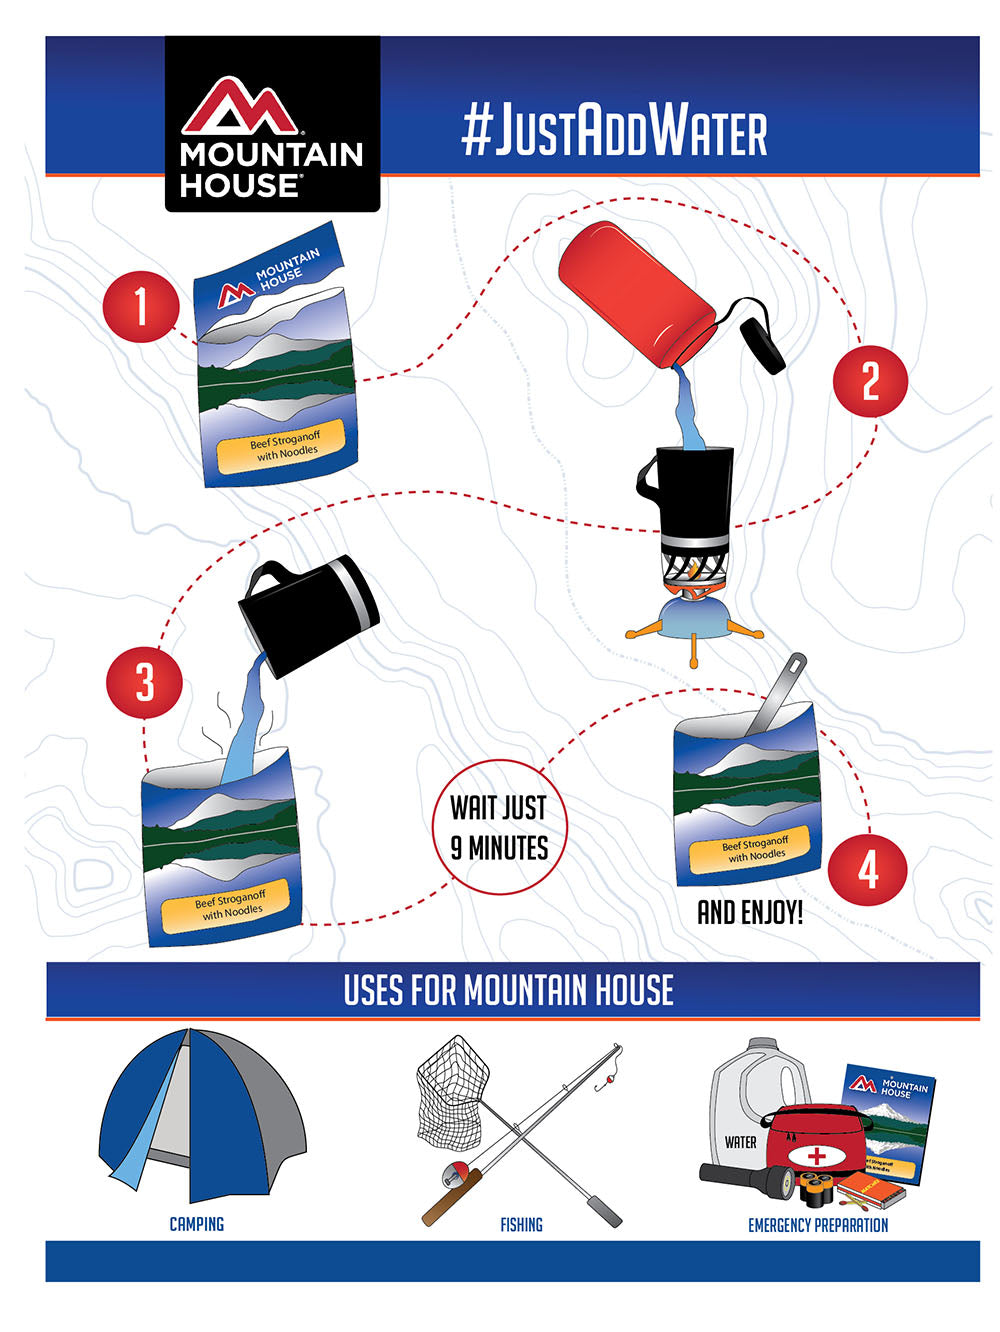 How to make a pouch of Mountain House infographic. Step 1, open pouch at tear line. Step 2, add water to camp stove and boil. Step 3, add hot water to pouch. Zip closed and wait 9 minutes. Step 4, open pouch, stir and eat. Mountain House can be used while camping, fishing, or for emergency preparation